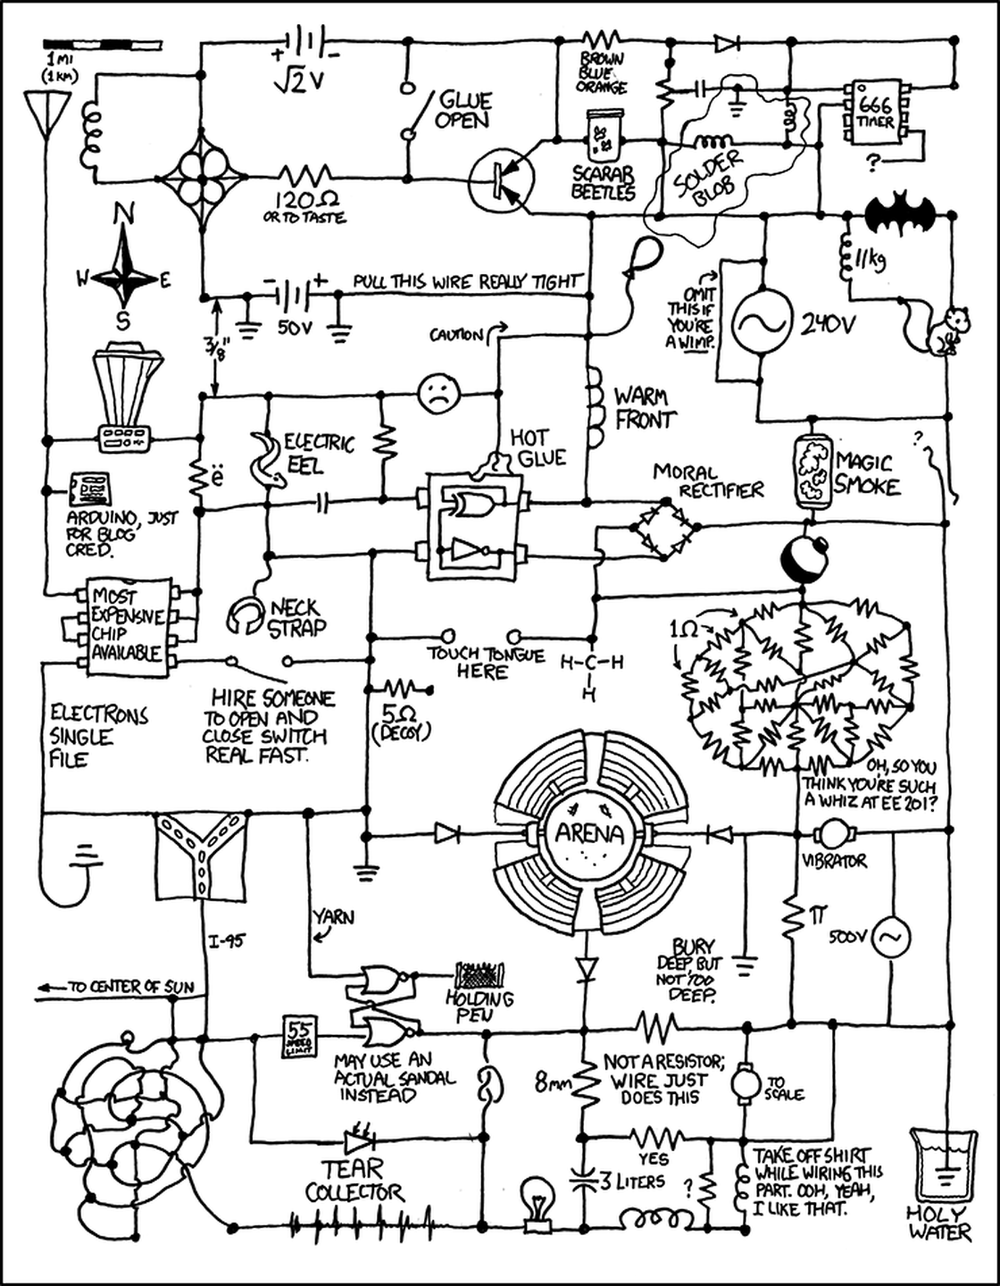 Remote control light bulb circuit diagram johncow us pinterest circuit diagram light bulb and remote